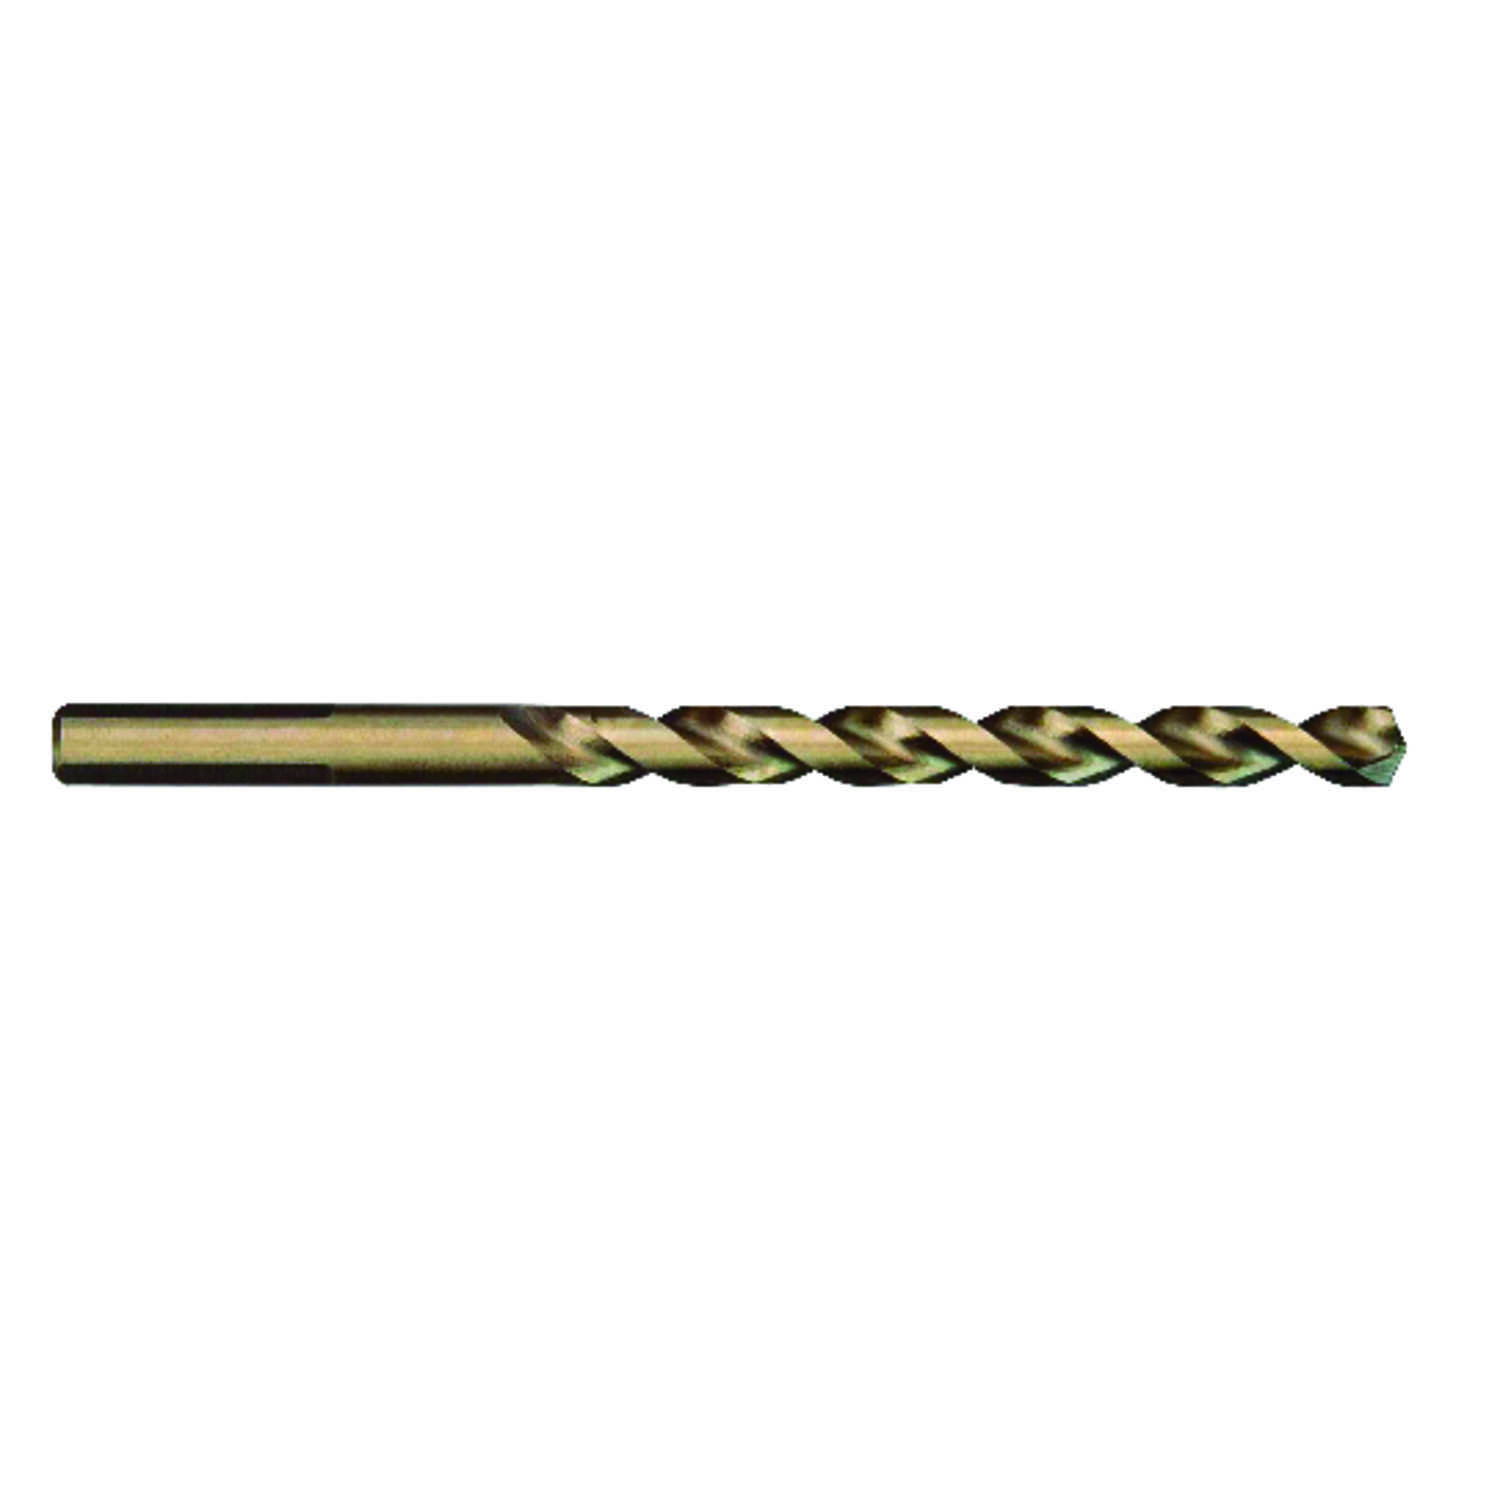 Milwaukee  RED HELIX  1/2 in. Dia. x 5 in. L Cobalt Steel  THUNDERBOLT  Drill Bit  1 pc.